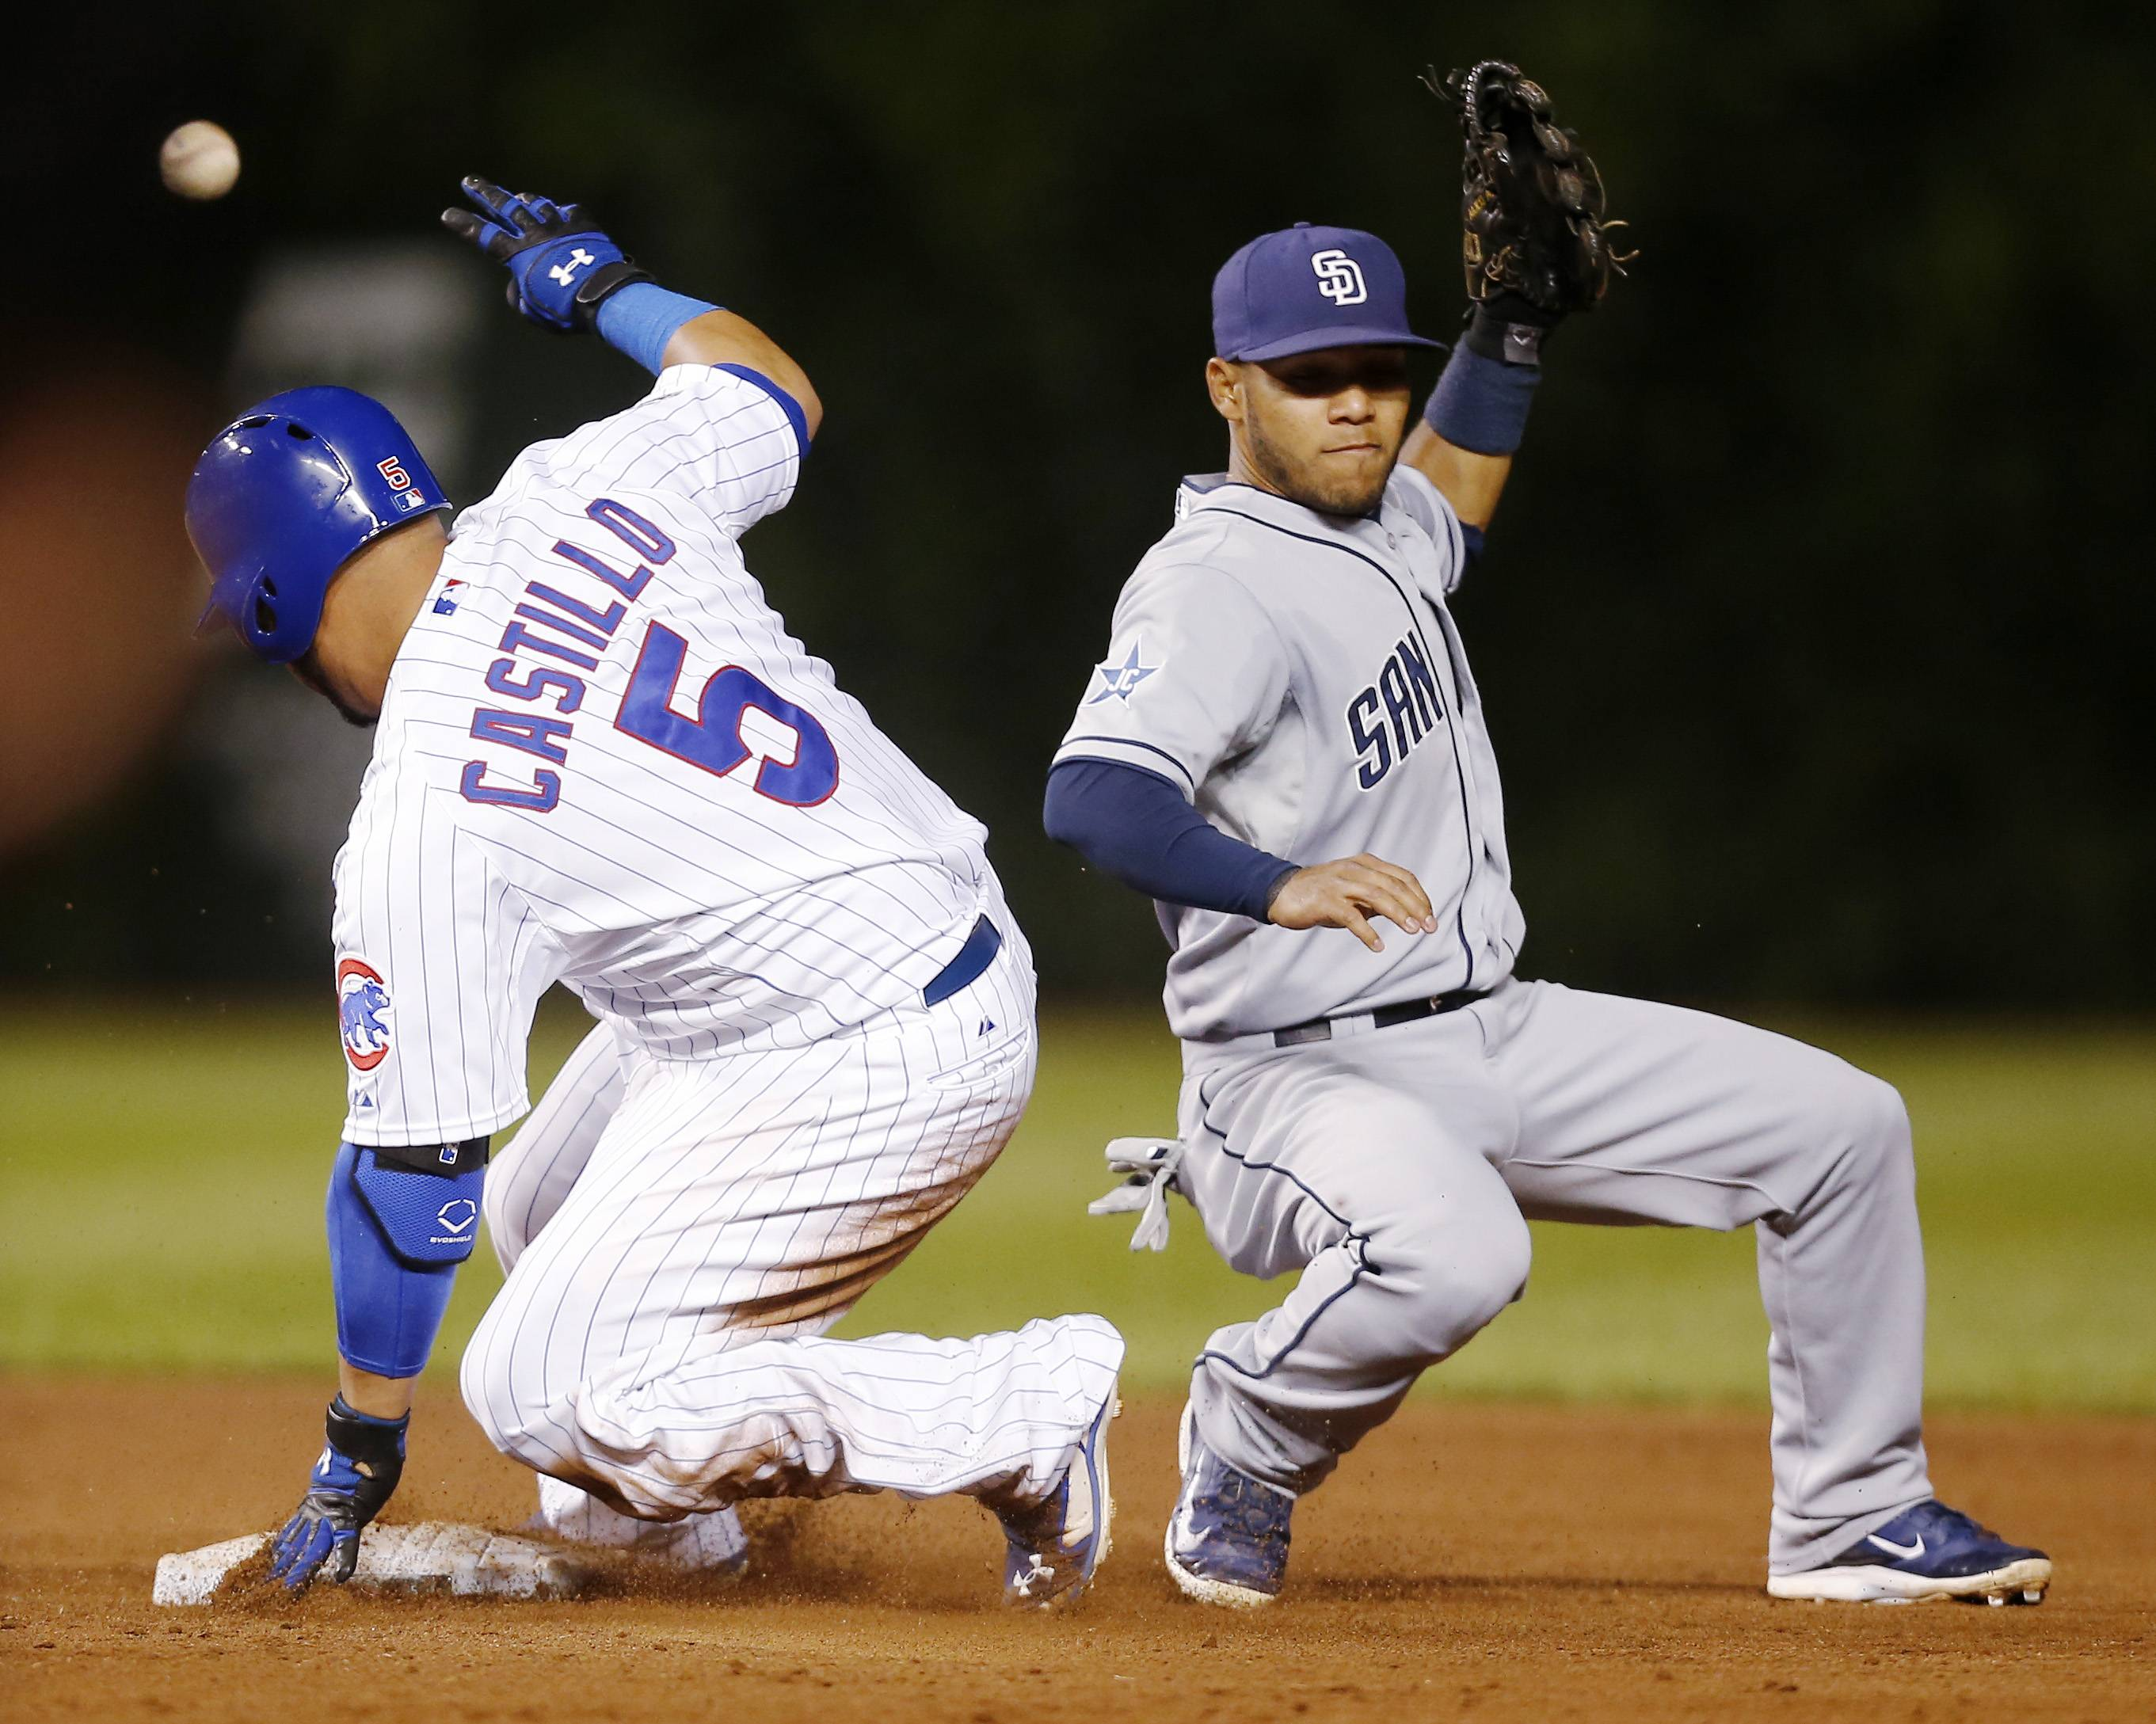 Cubs' Welington Castillo is safe at second on a double as San Diego Padres shortstop Alexi Amarista loses the ball during the fifth inning of a baseball game on Wednesday, July 23, 2014, in Chicago.